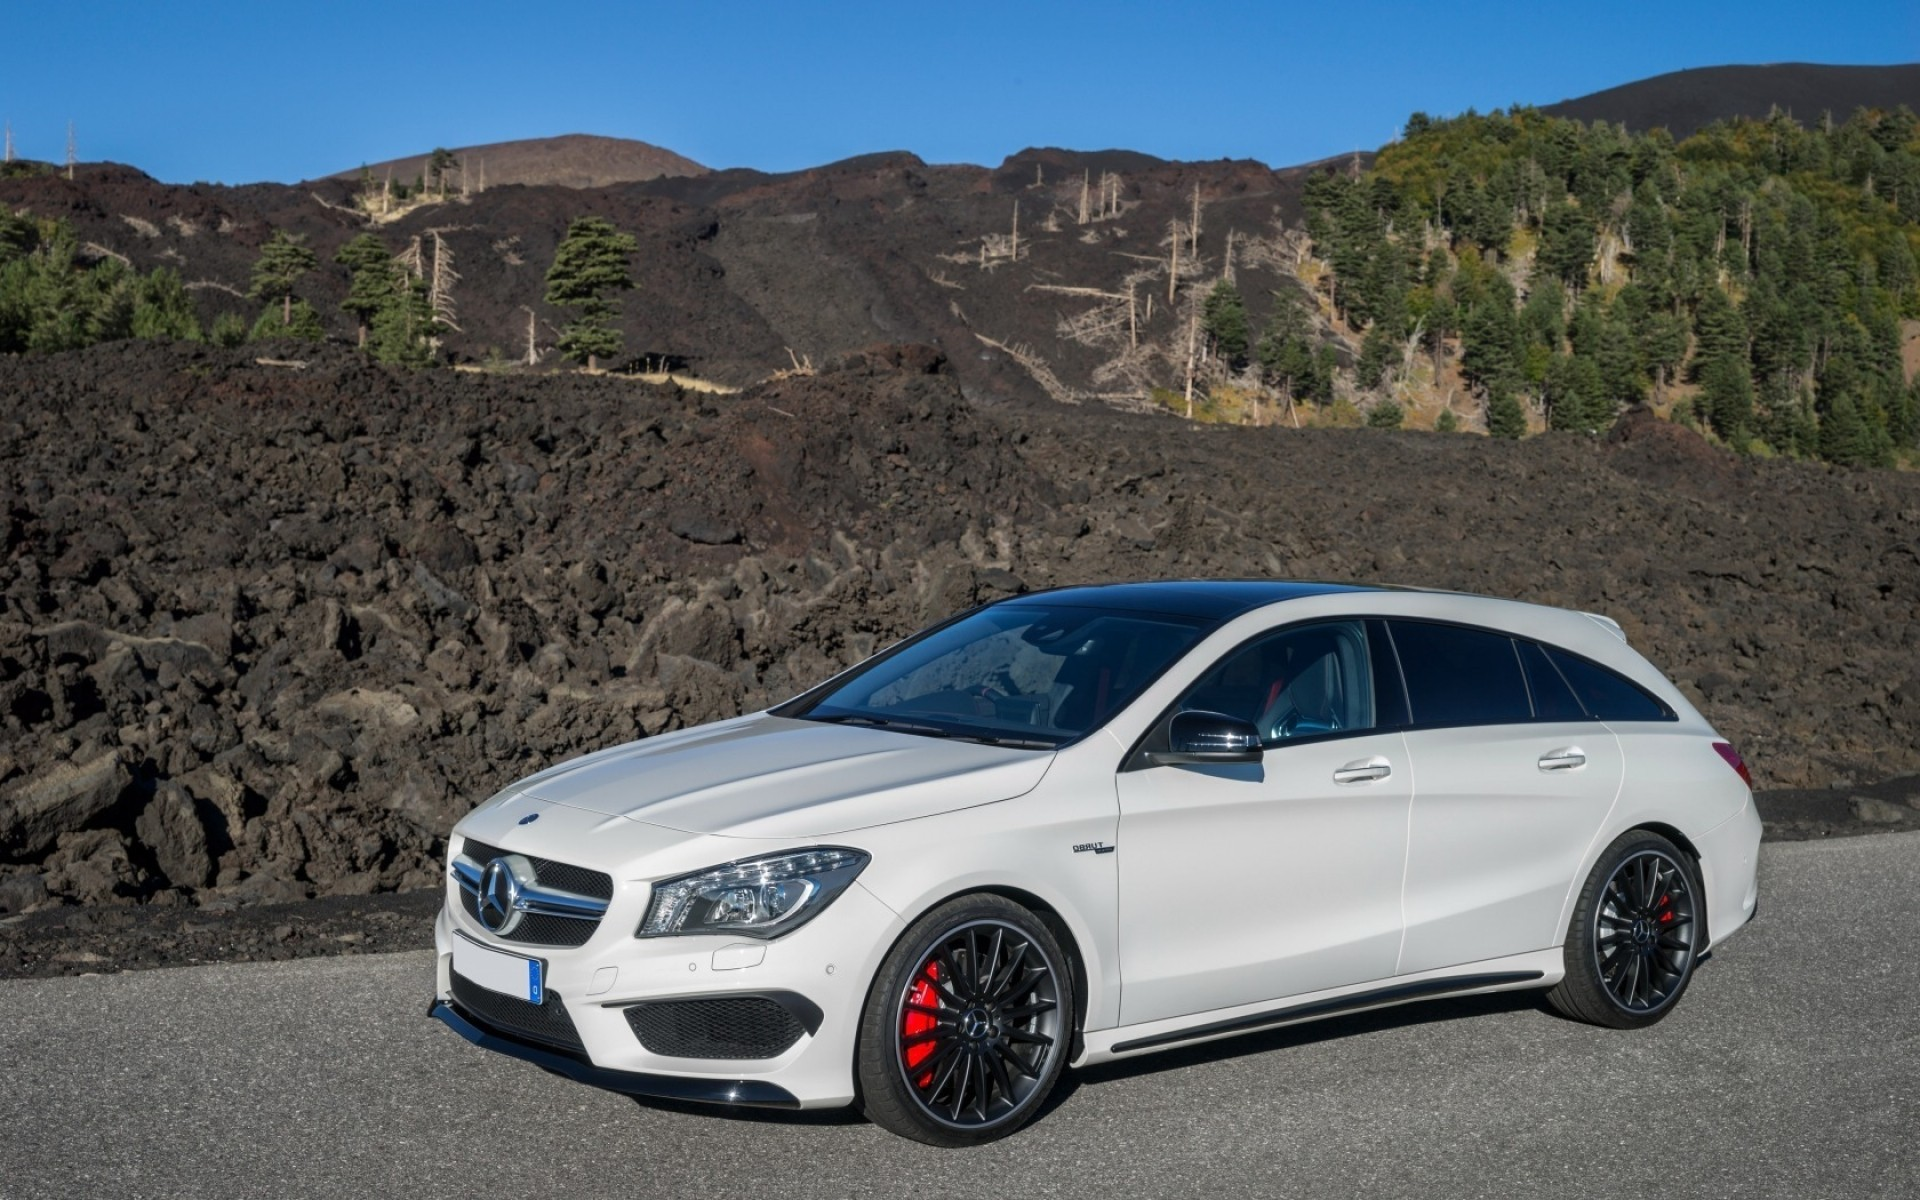 mercedes-benz car vehicle noon blacktop pavement transportation system hurry mercedes cla 45 amg